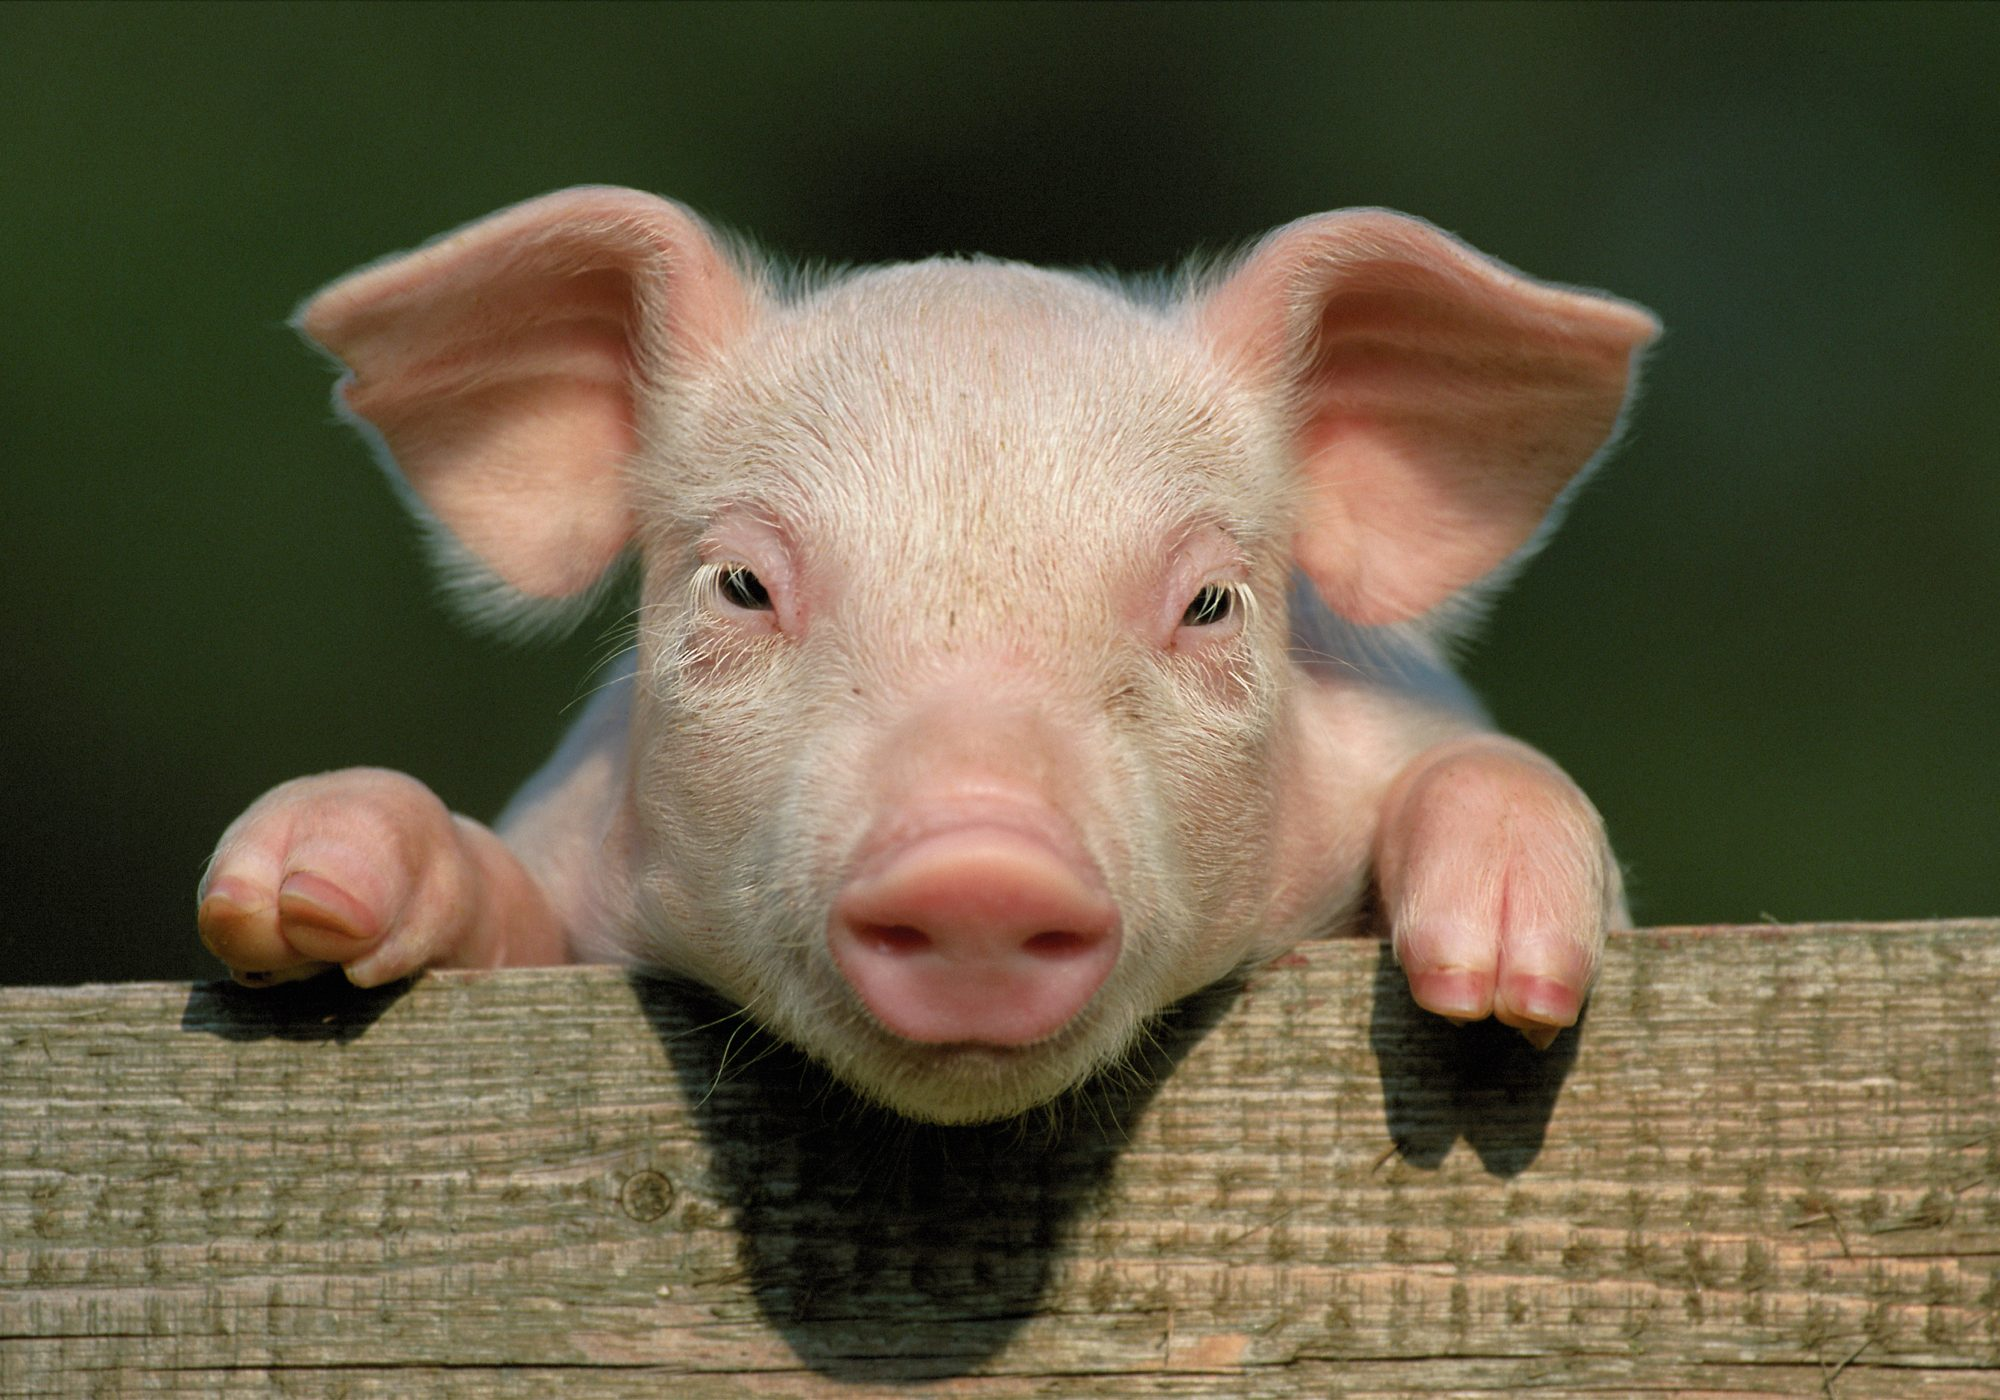 pink pig leaning on wooden fence